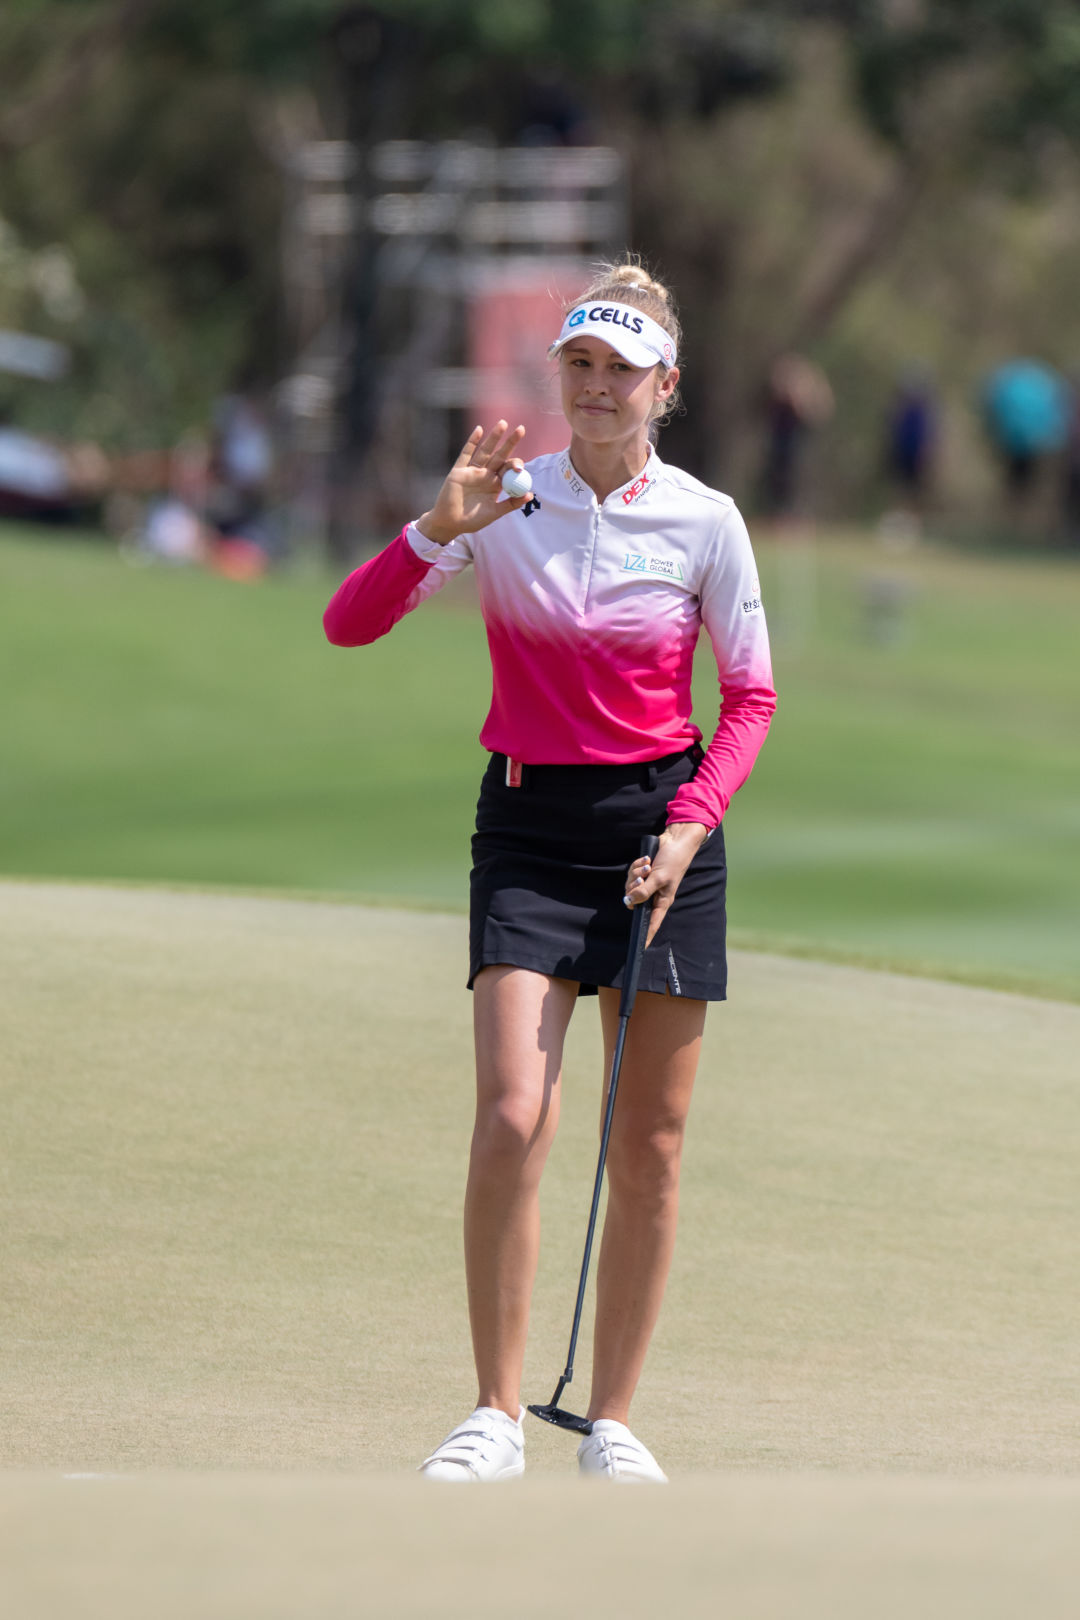 Nelly Korda won a gold medal for Team USA